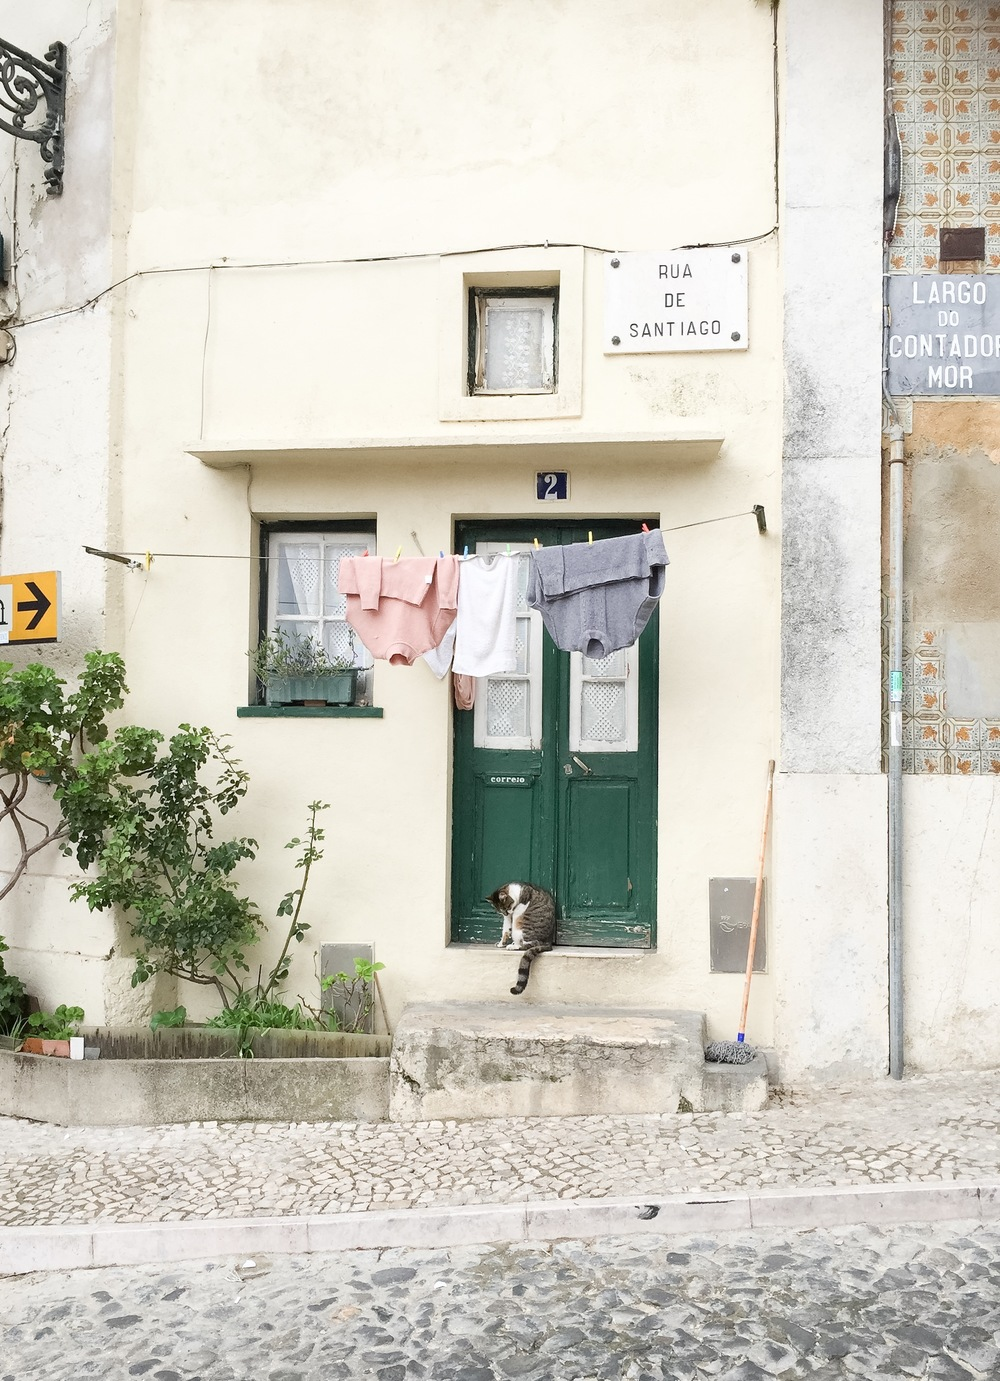 A cat is seen in the streets of Lisbon, Portugal. Photo: Larisa Graham